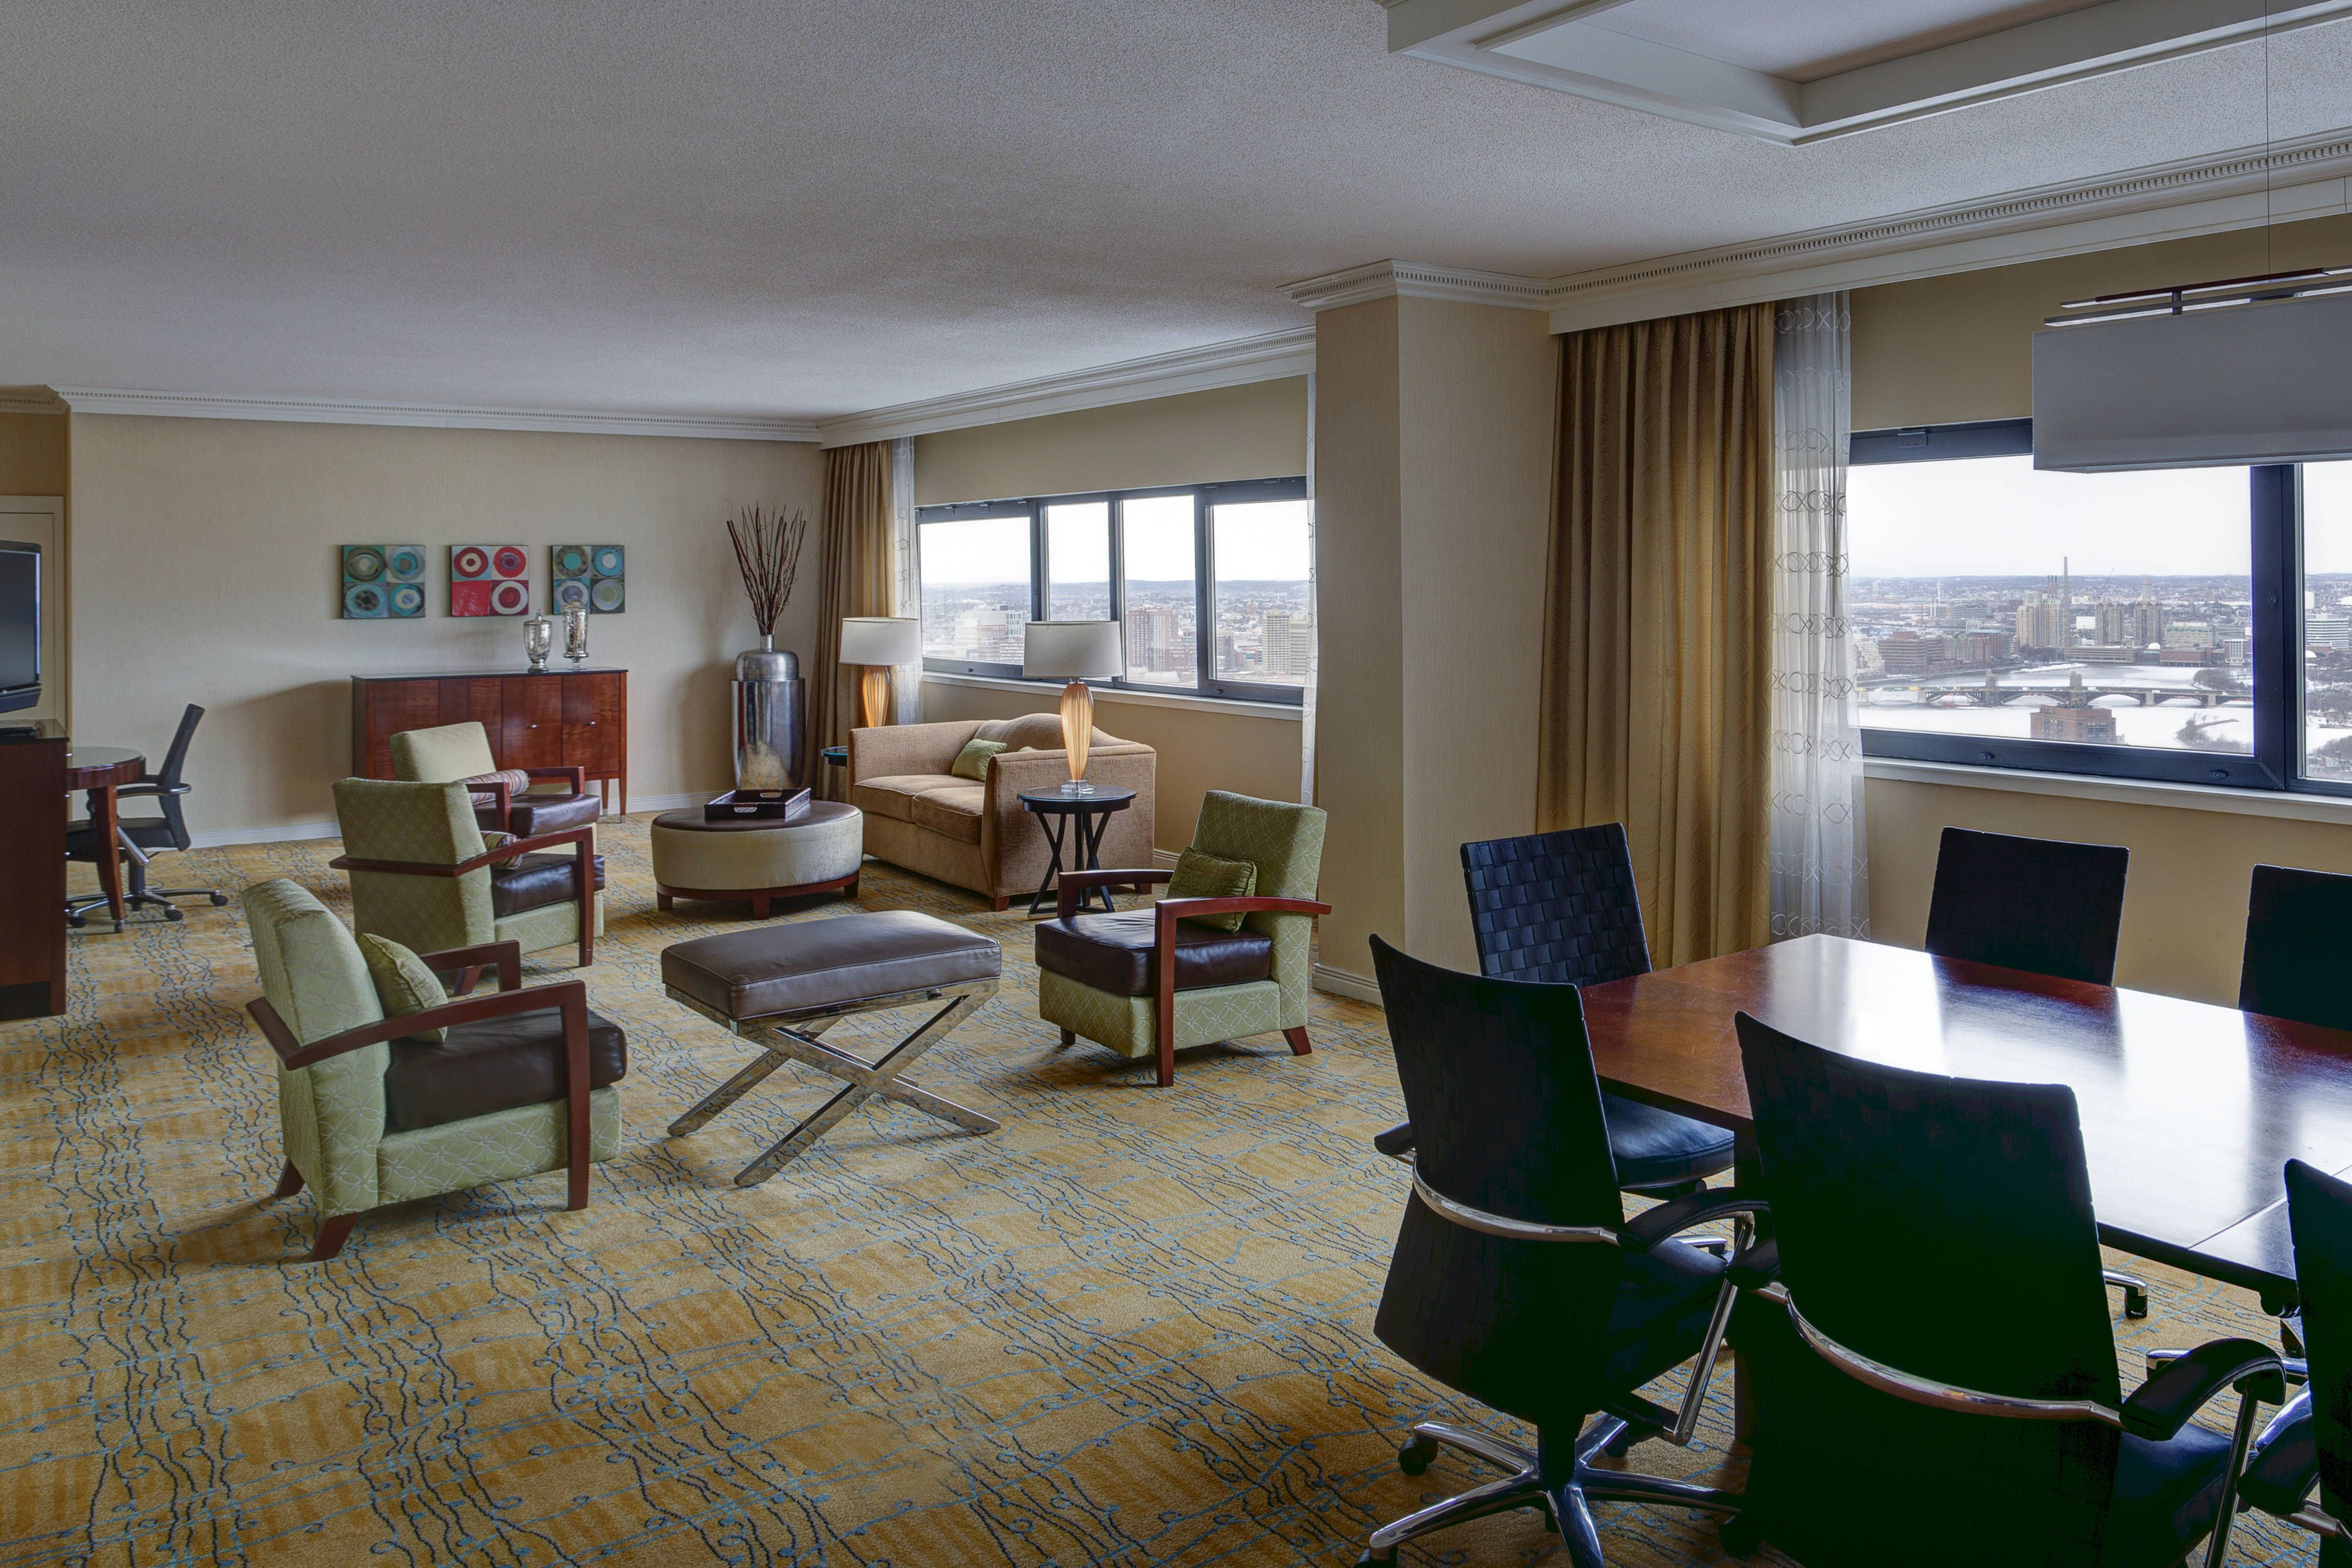 Boston Marriott Copley Place Vice Presidential Suite Hotels Traveling Guestroom Home Design Plans House Design Home